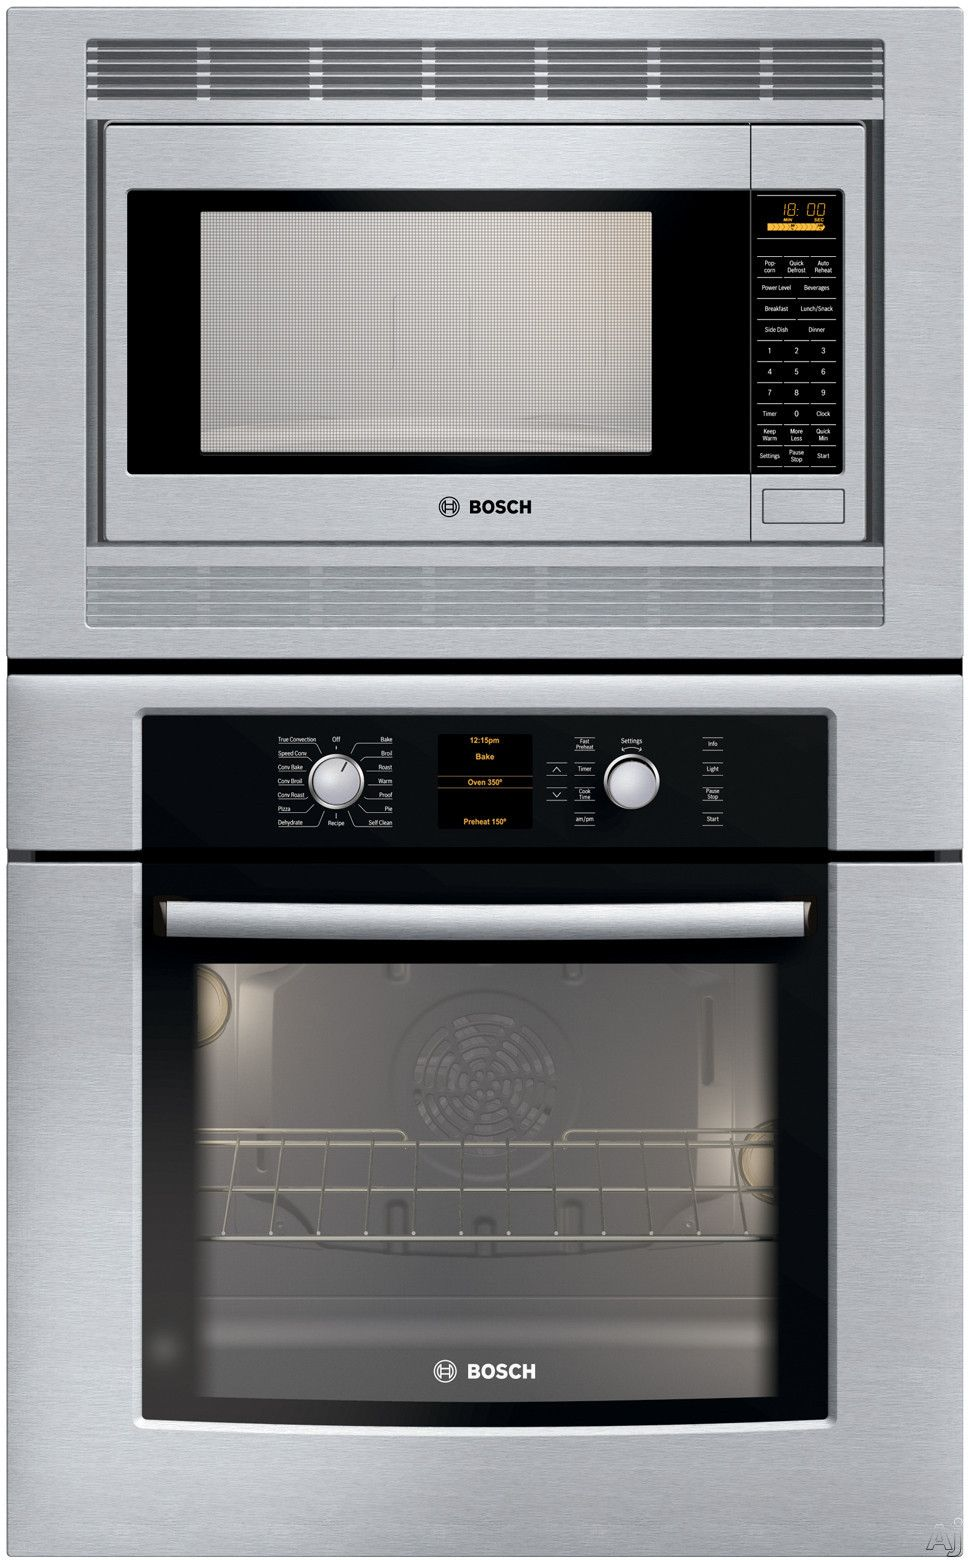 Bosch Wall Oven Micro Combo Great For Small Spaces